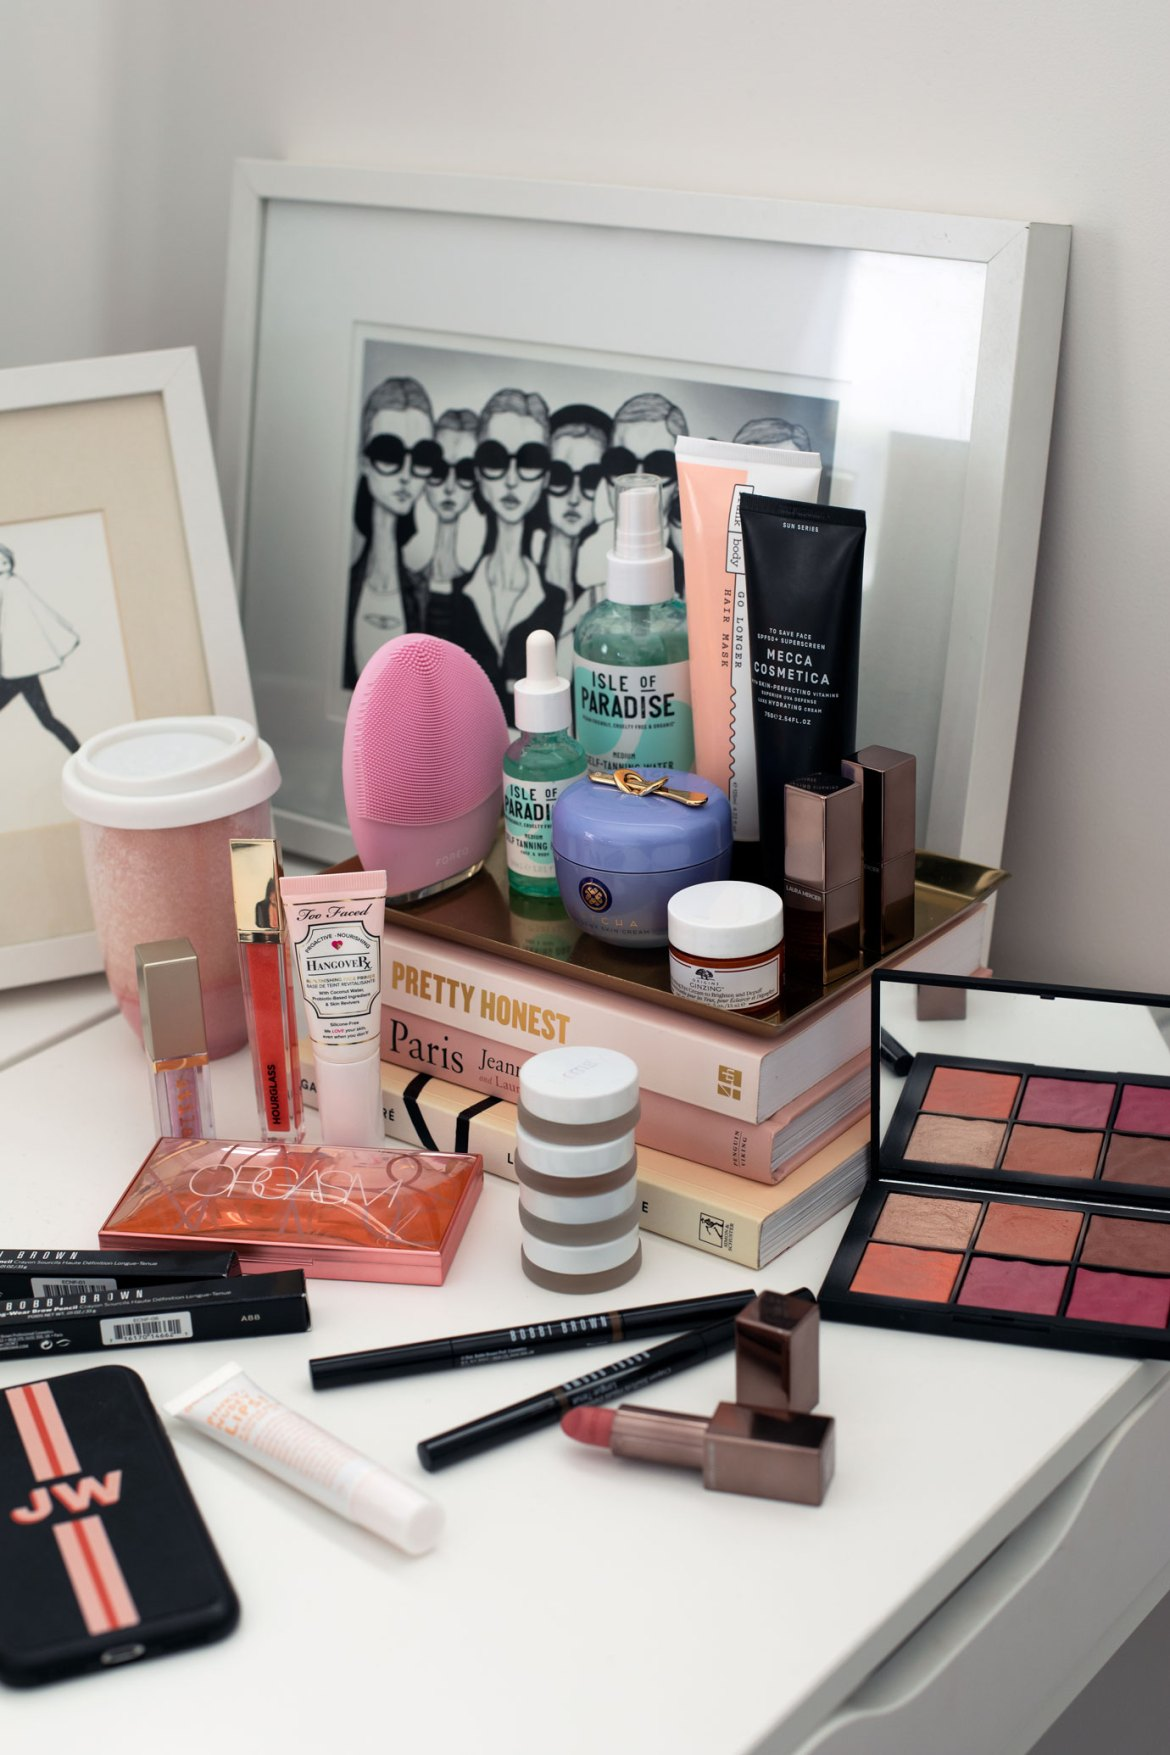 makeup and skincare products from Mecca